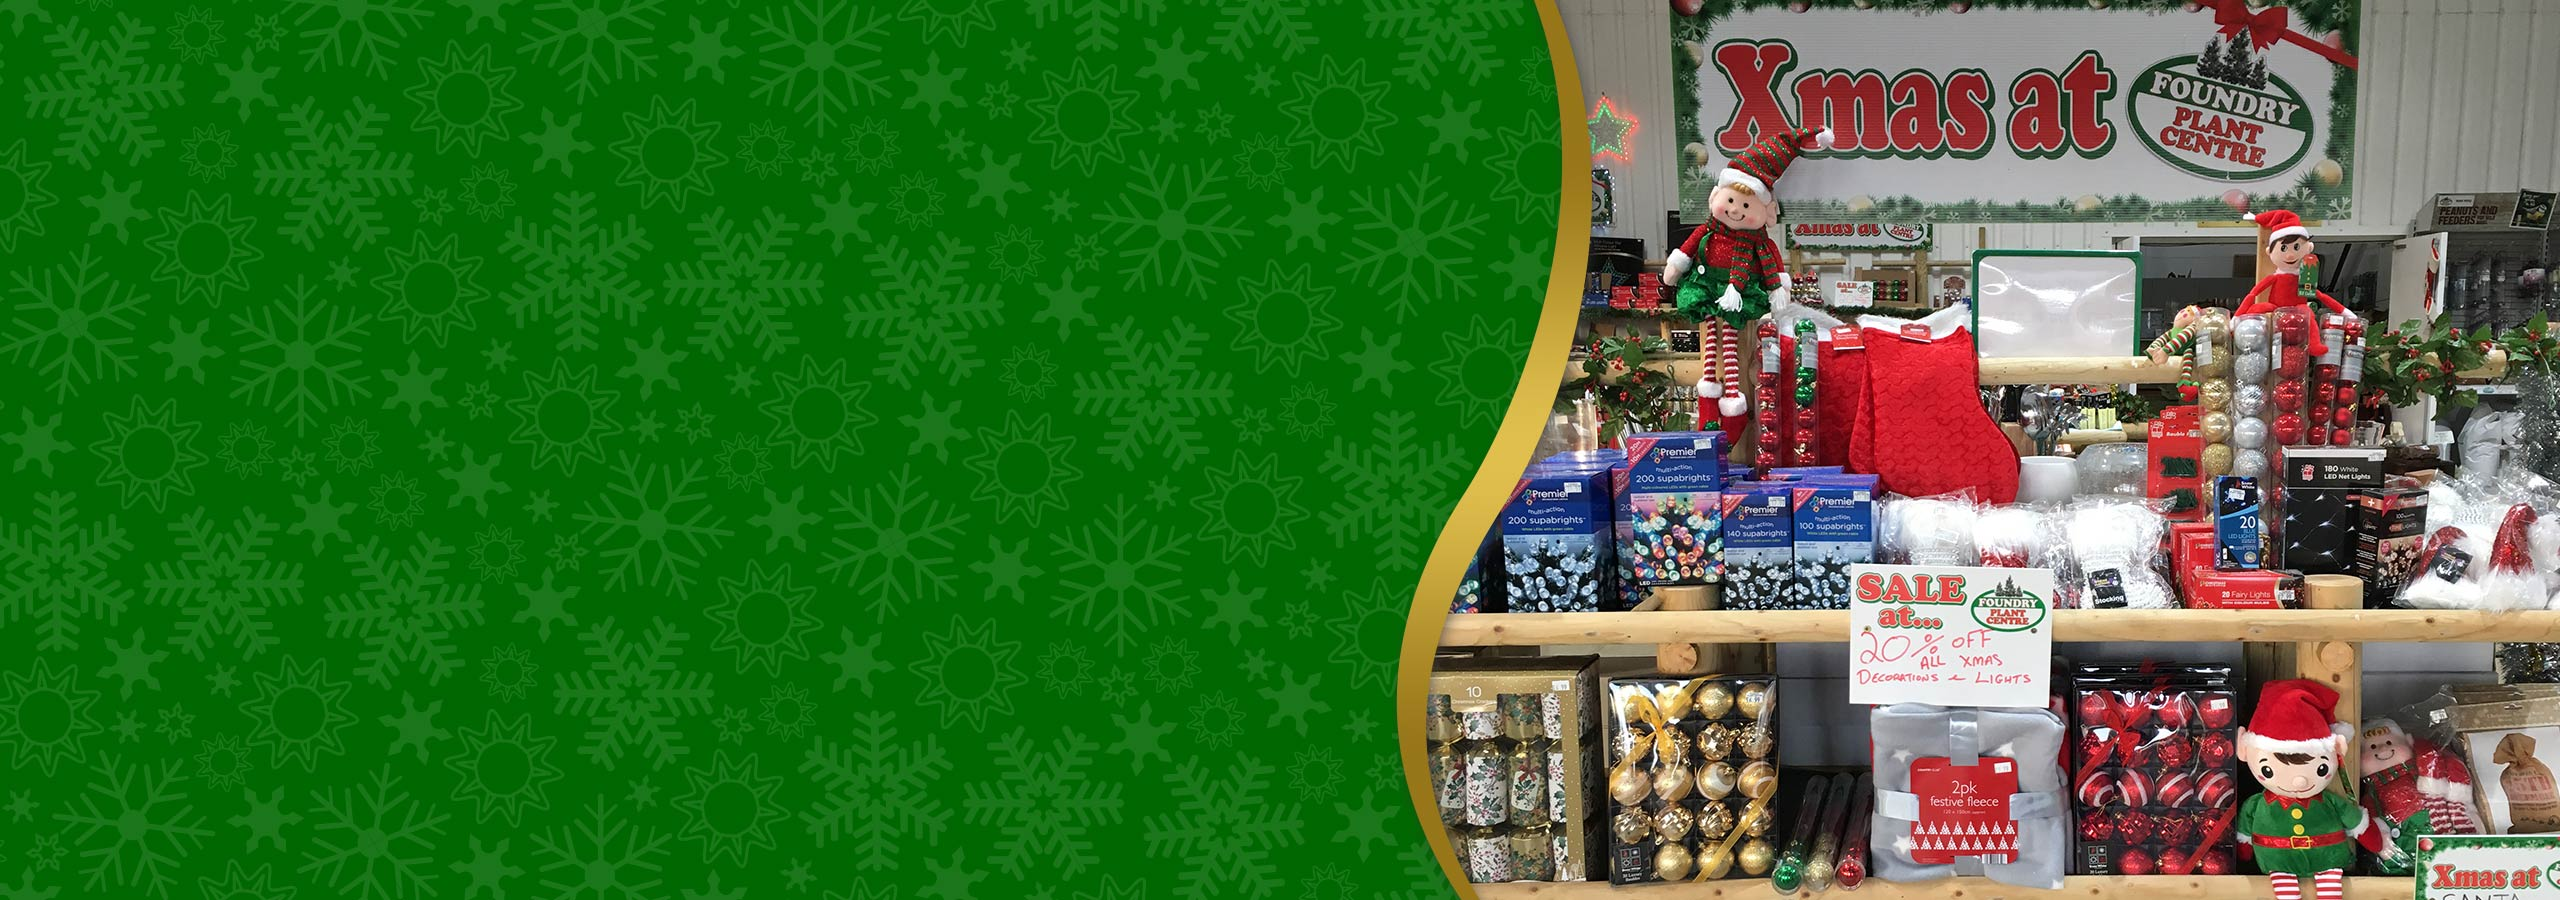 Our Christmas shop